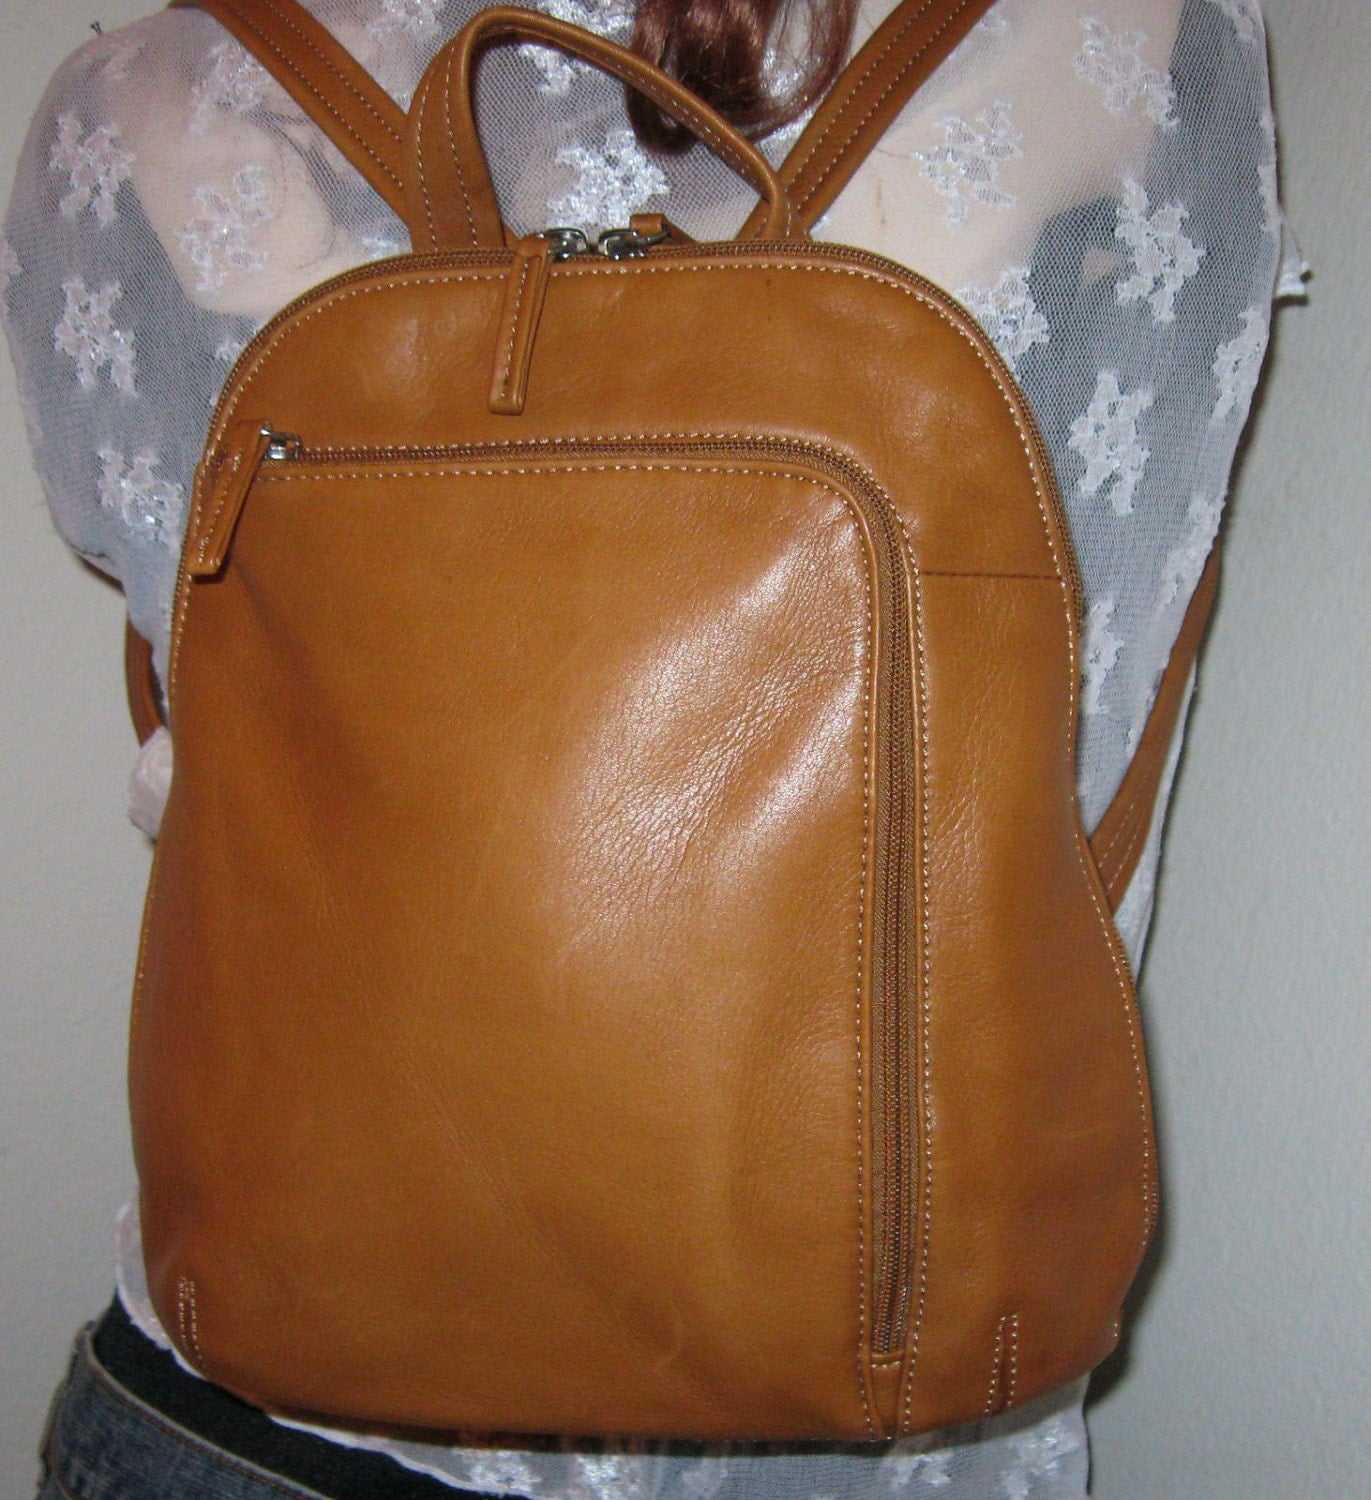 Tignanello Butter Soft Genuine Leather Backpack Day Pack